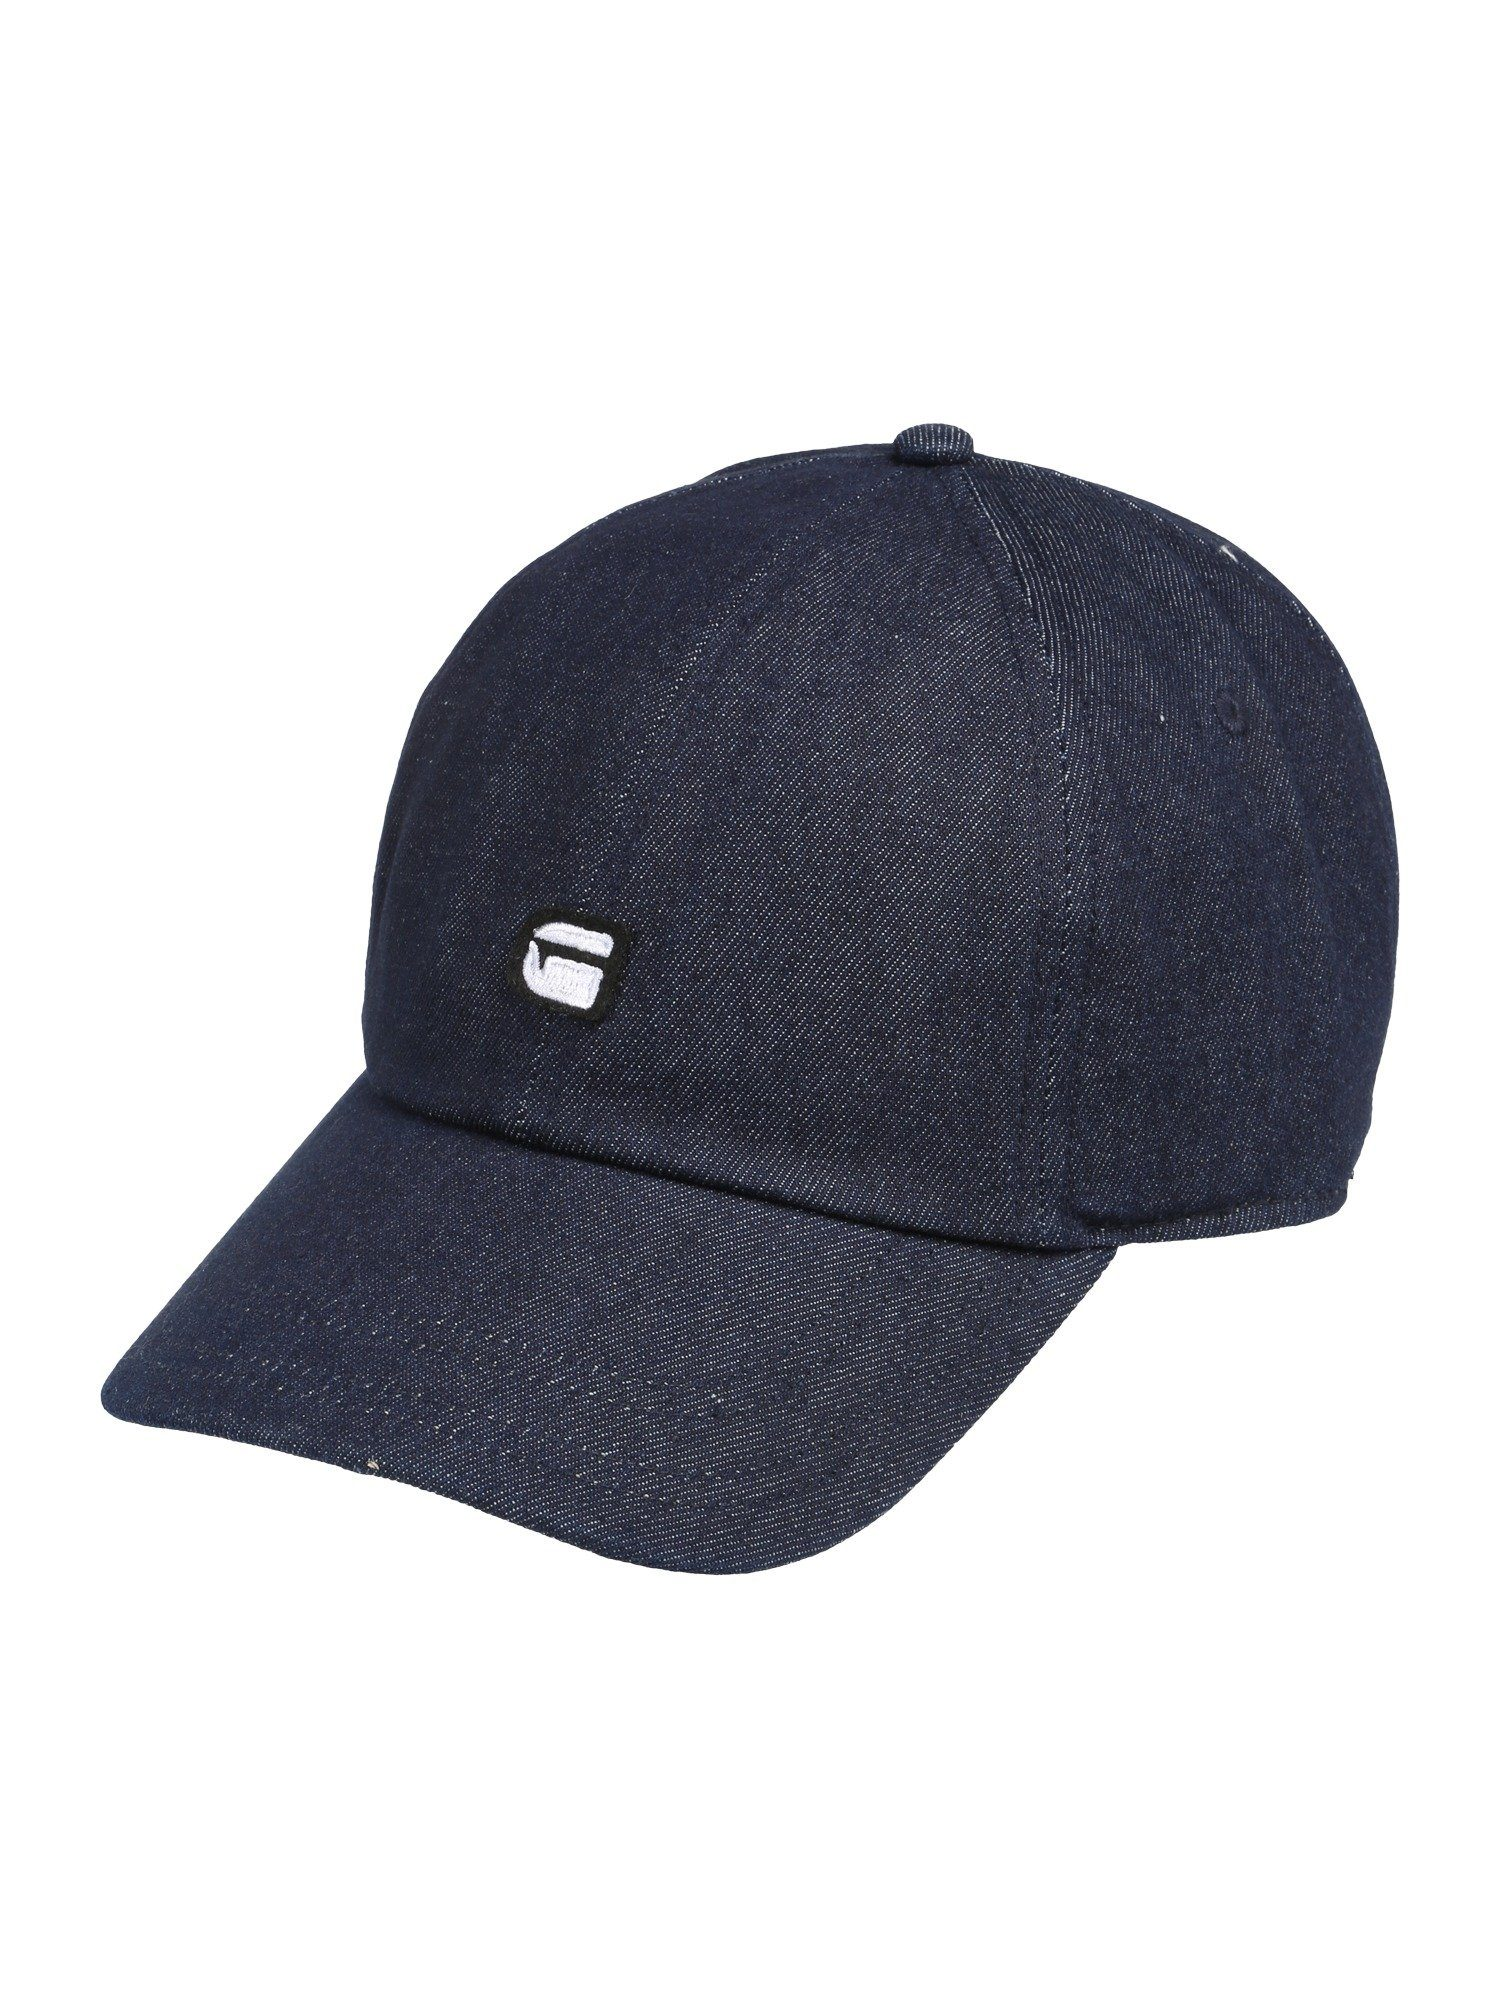 G-Star RAW Fitted Cap »Avernus«